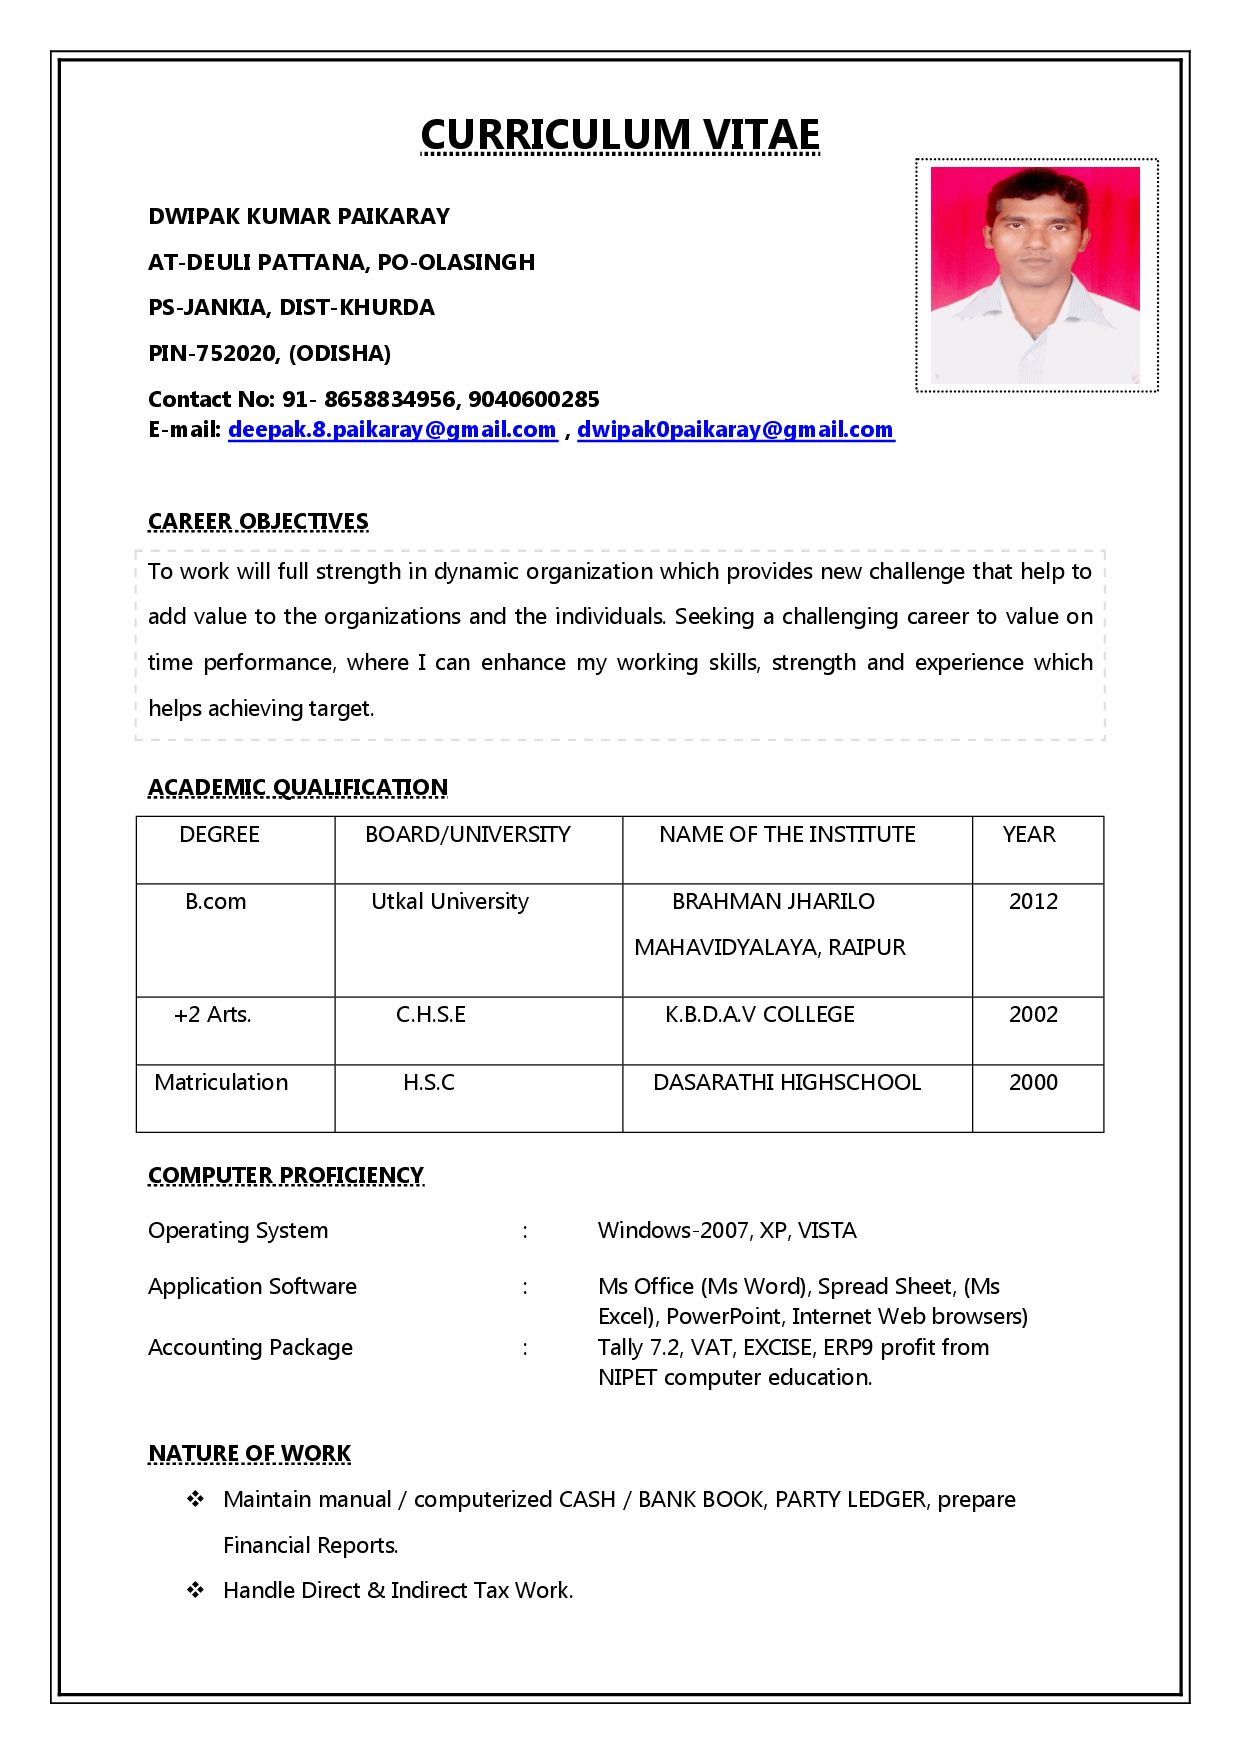 Job Interview Job resume format, Job resume template